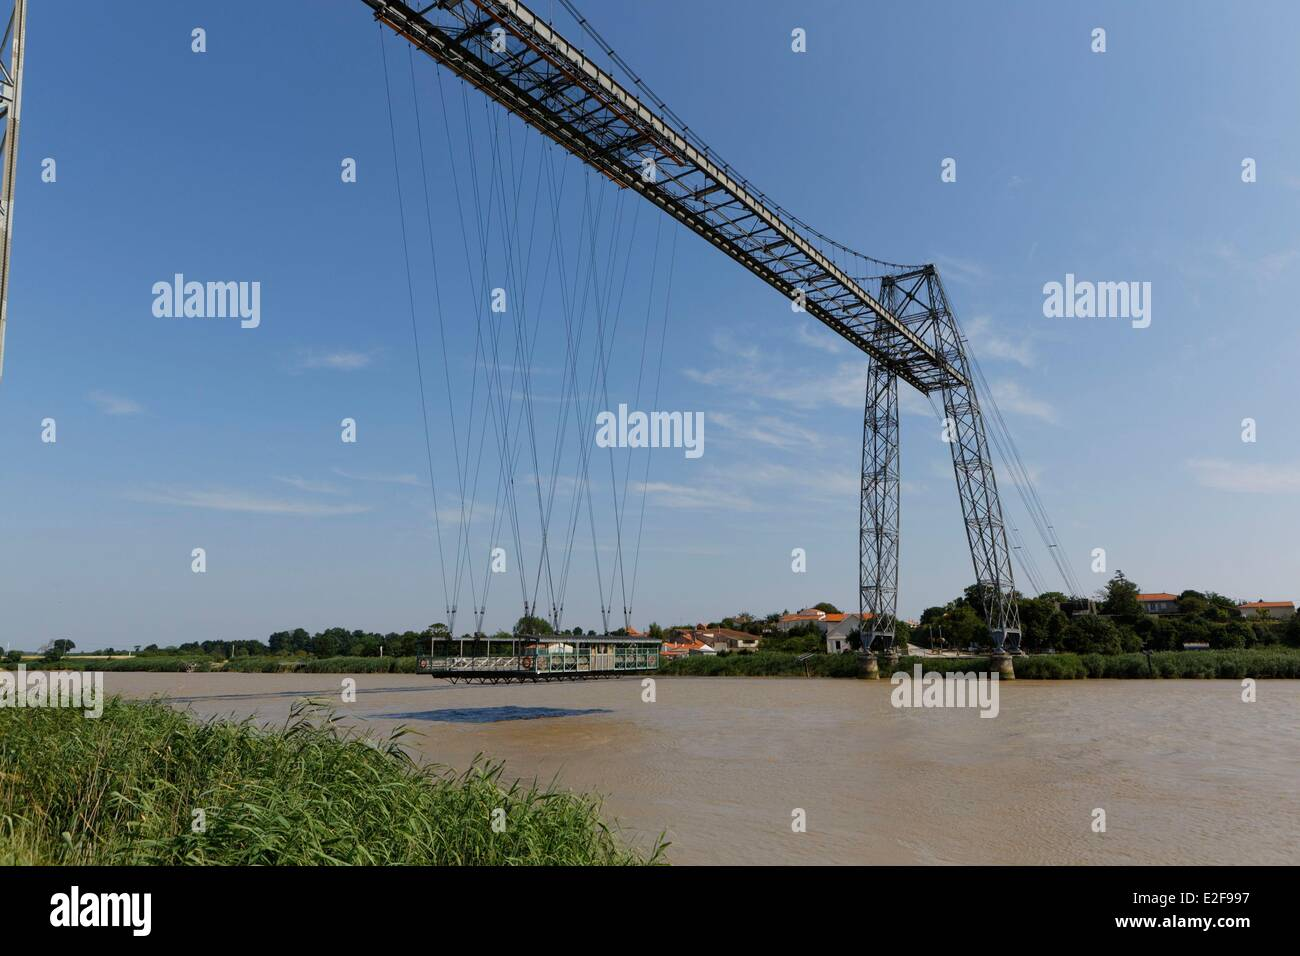 France, Charente Maritime, Rochefort, the transfer bridge over the Charente river - Stock Image